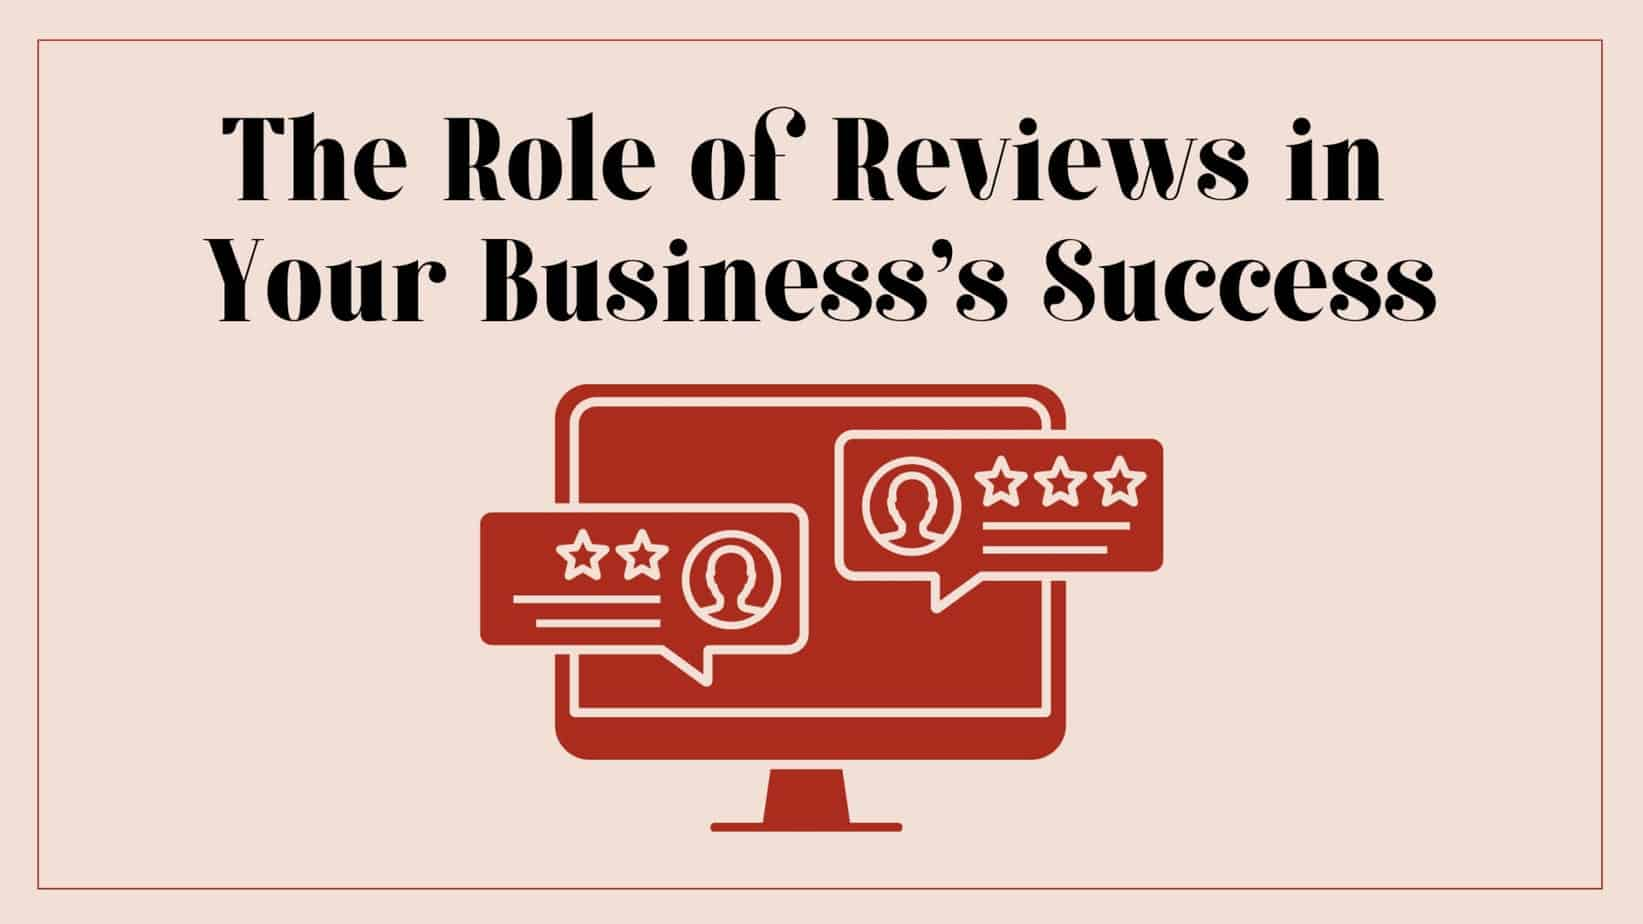 The Role of Reviews in Your Business's Success